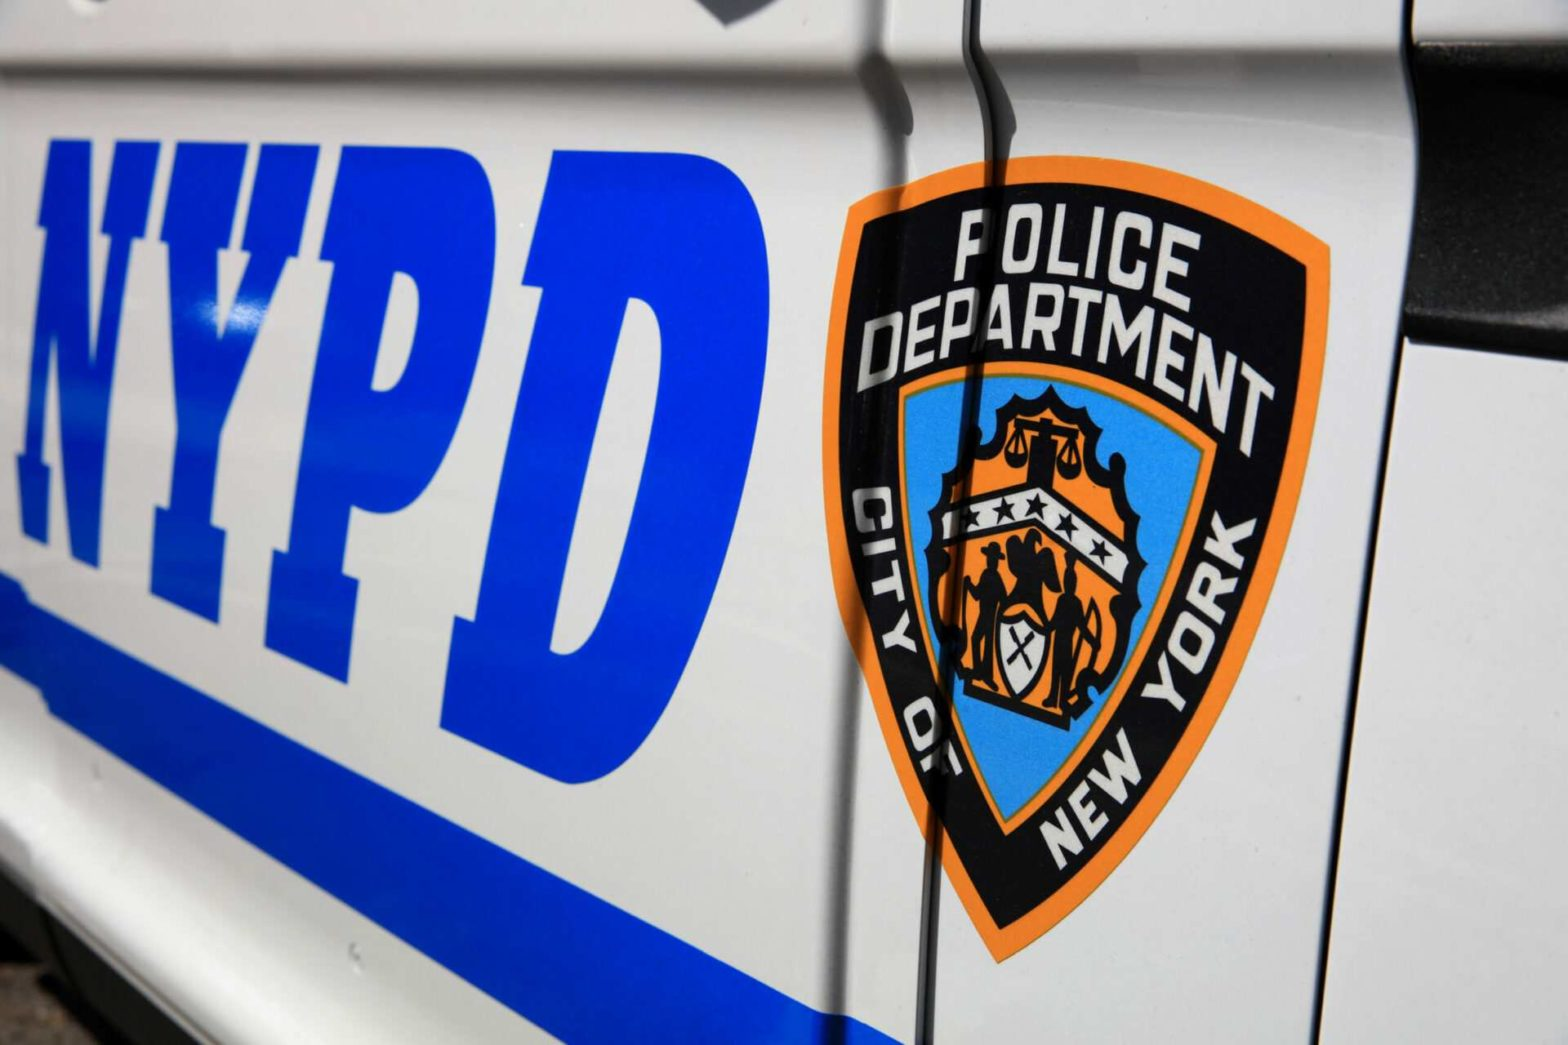 US NEWS NYPD OFFICER SHOOTING DMT scaled FzKEYs